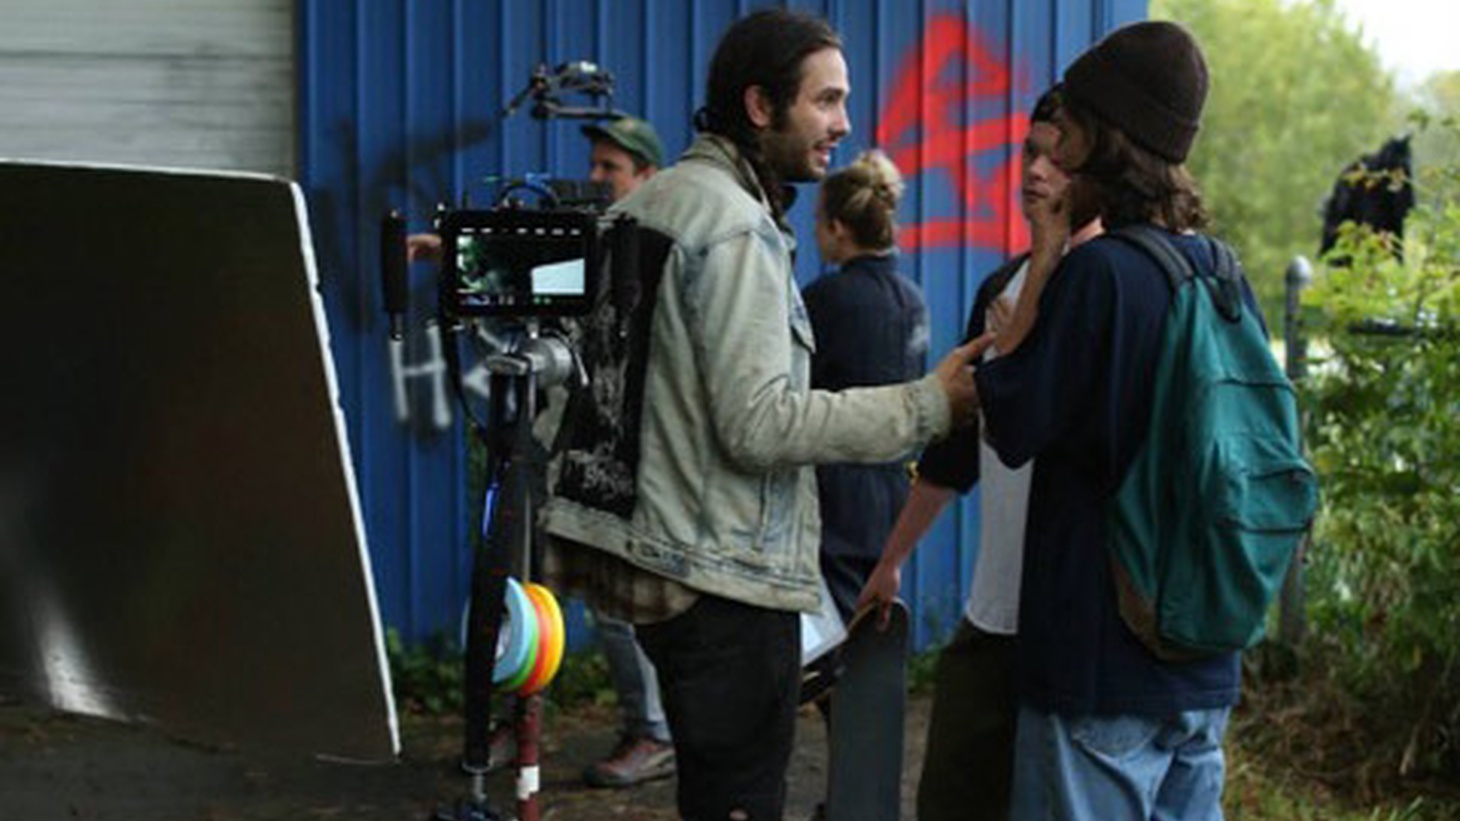 EXCLUSIVE PODCAST:Filmmaker Miles Joris-Peyrafitte joins Elvis Mitchell to discuss the realism of coming of age in As You Are.